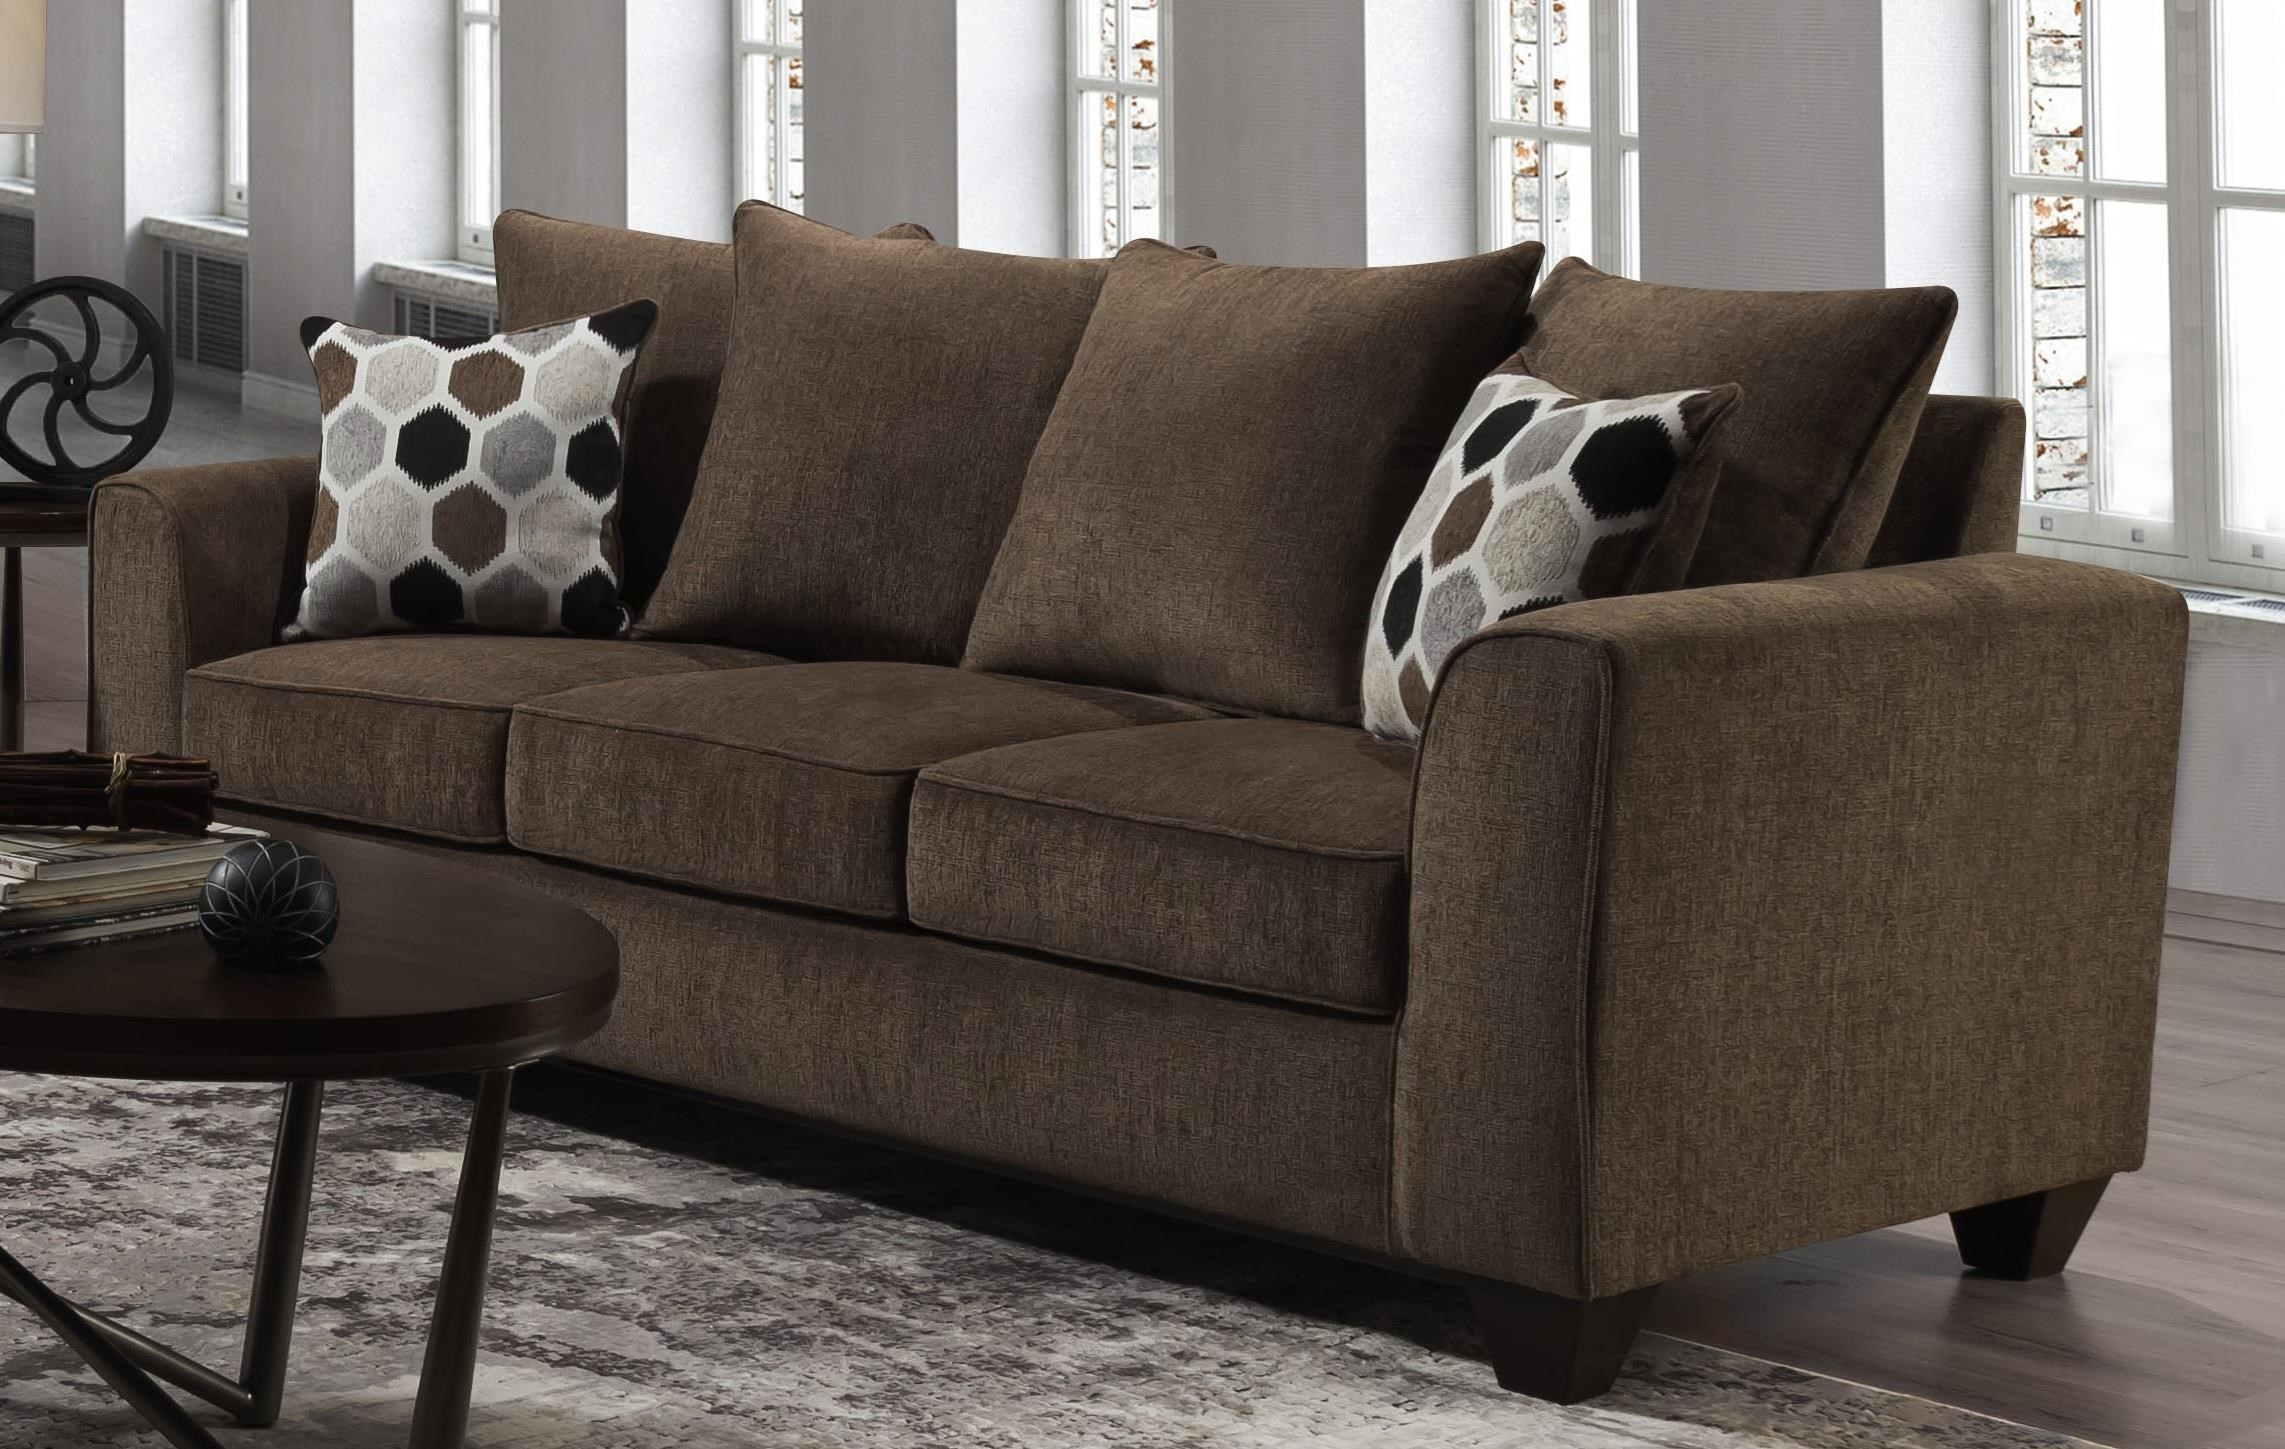 Tripp Tripp Sofa with Accent Pillows by Peak Living at Morris Home